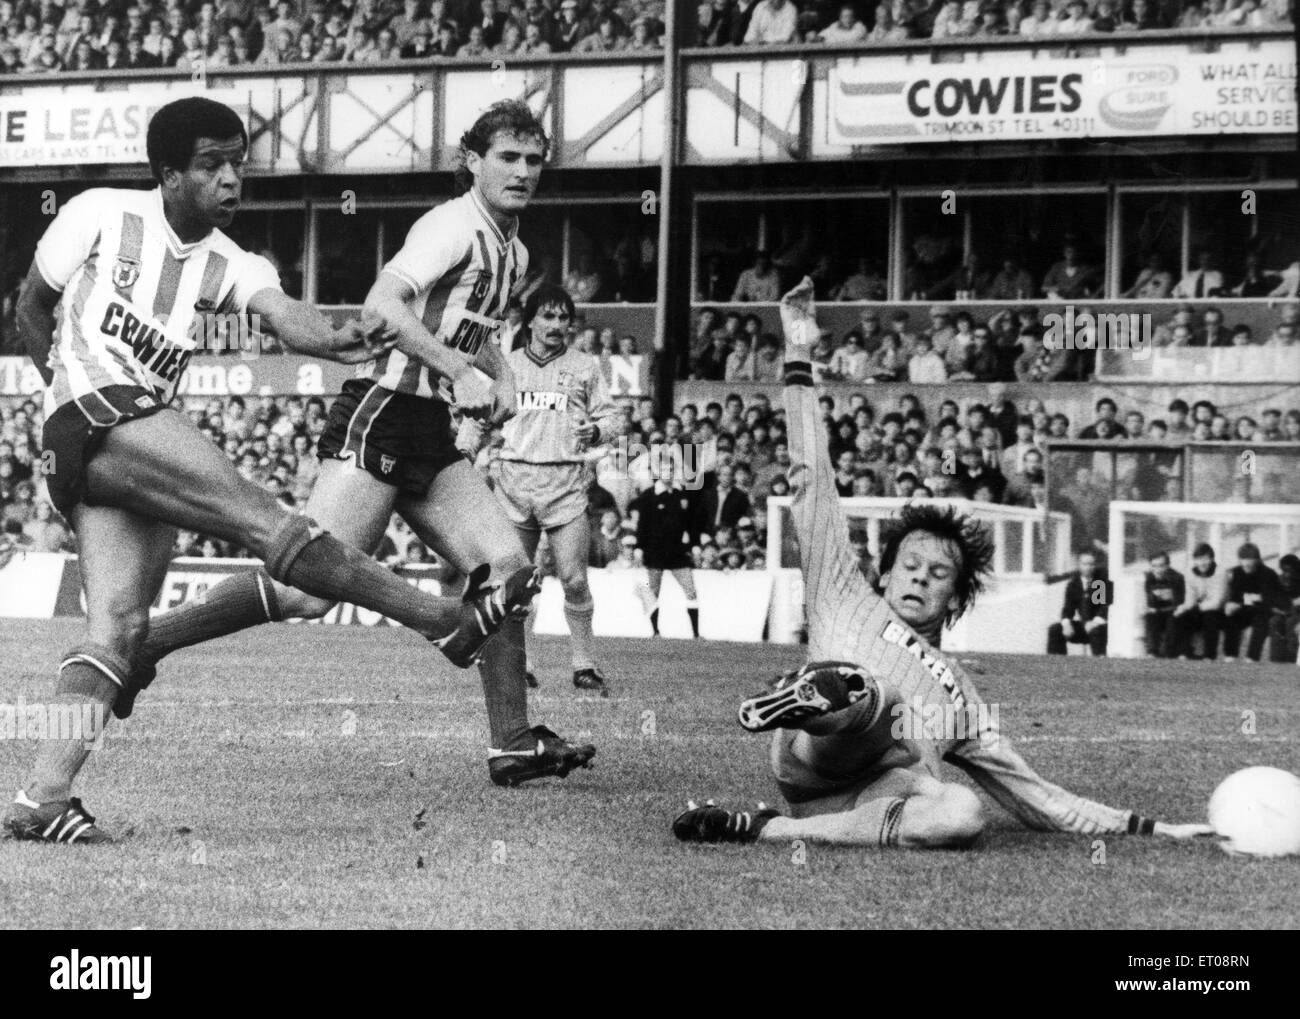 Howard Gayle (born 18 May 1958) is a former English footballer, seen here when he played for Sunderland. Circa 1984. - Stock Image